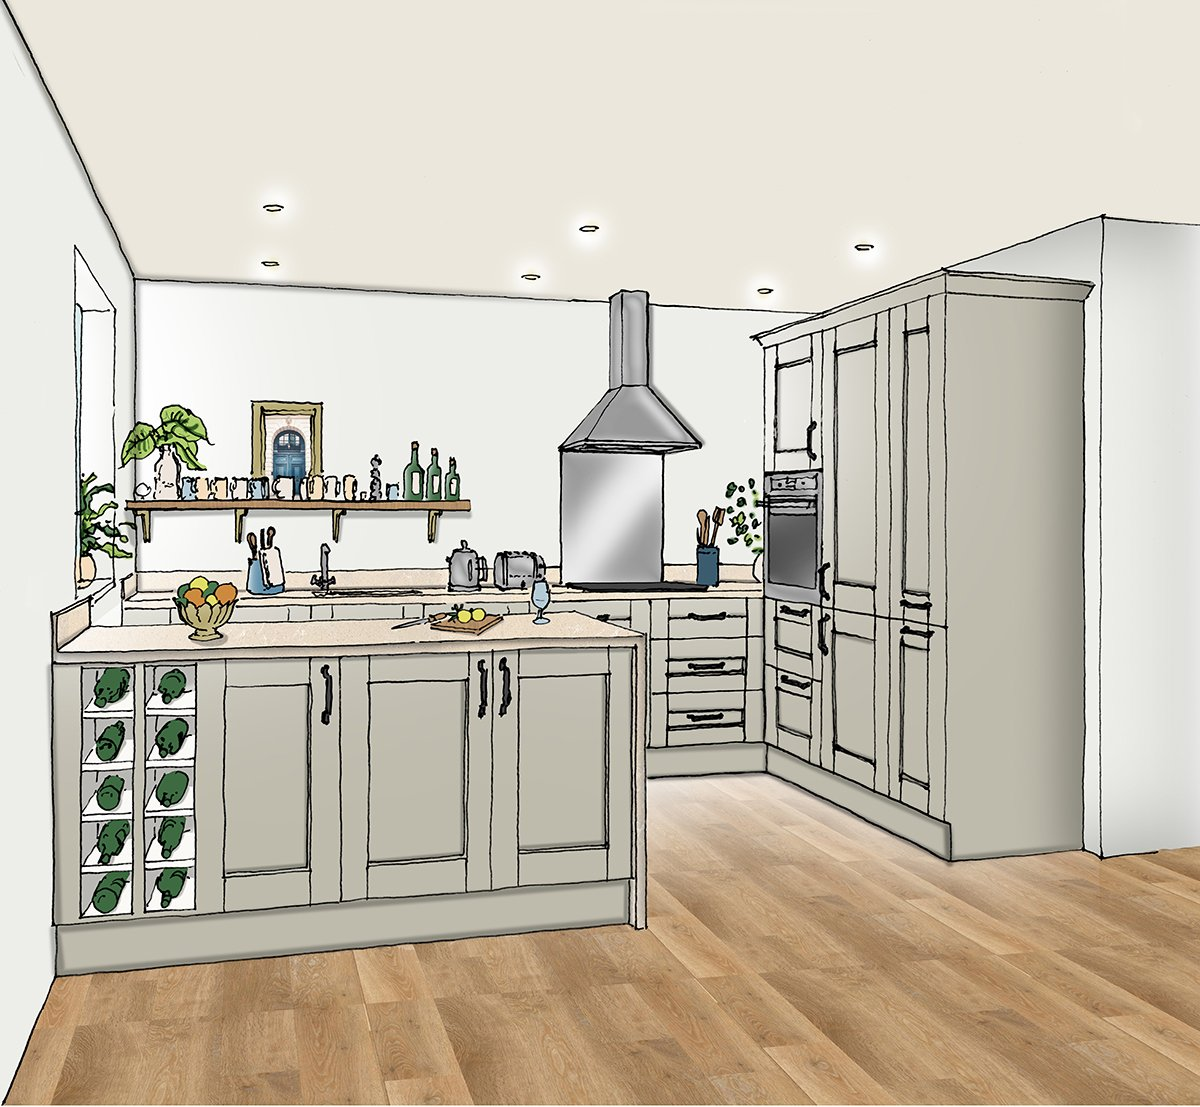 Birchgrove Woking Kitchen Sketch